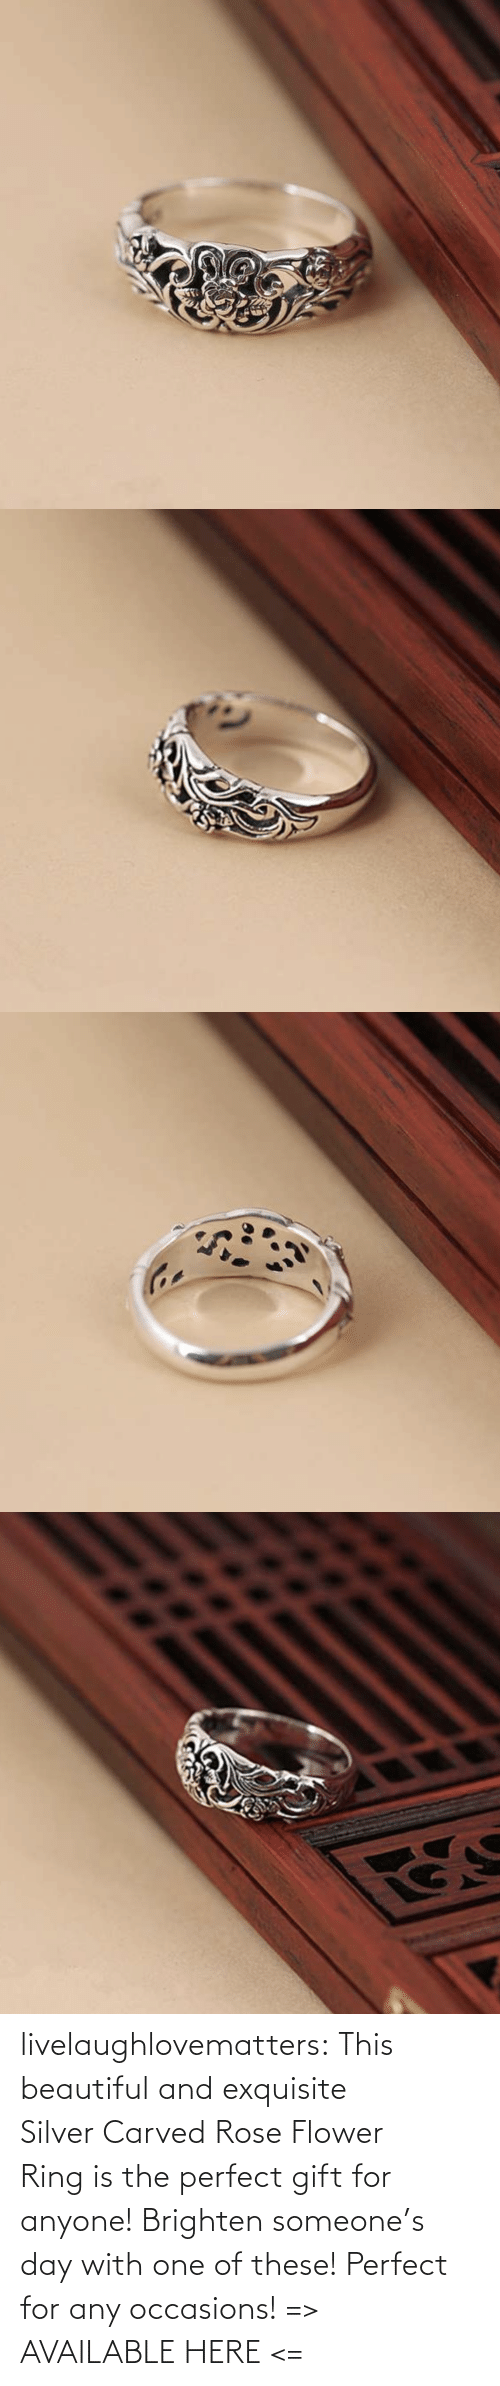 perfect: livelaughlovematters: This beautiful and exquisite Silver Carved Rose Flower Ring is the perfect gift for anyone! Brighten someone's day with one of these! Perfect for any occasions!  => AVAILABLE HERE <=